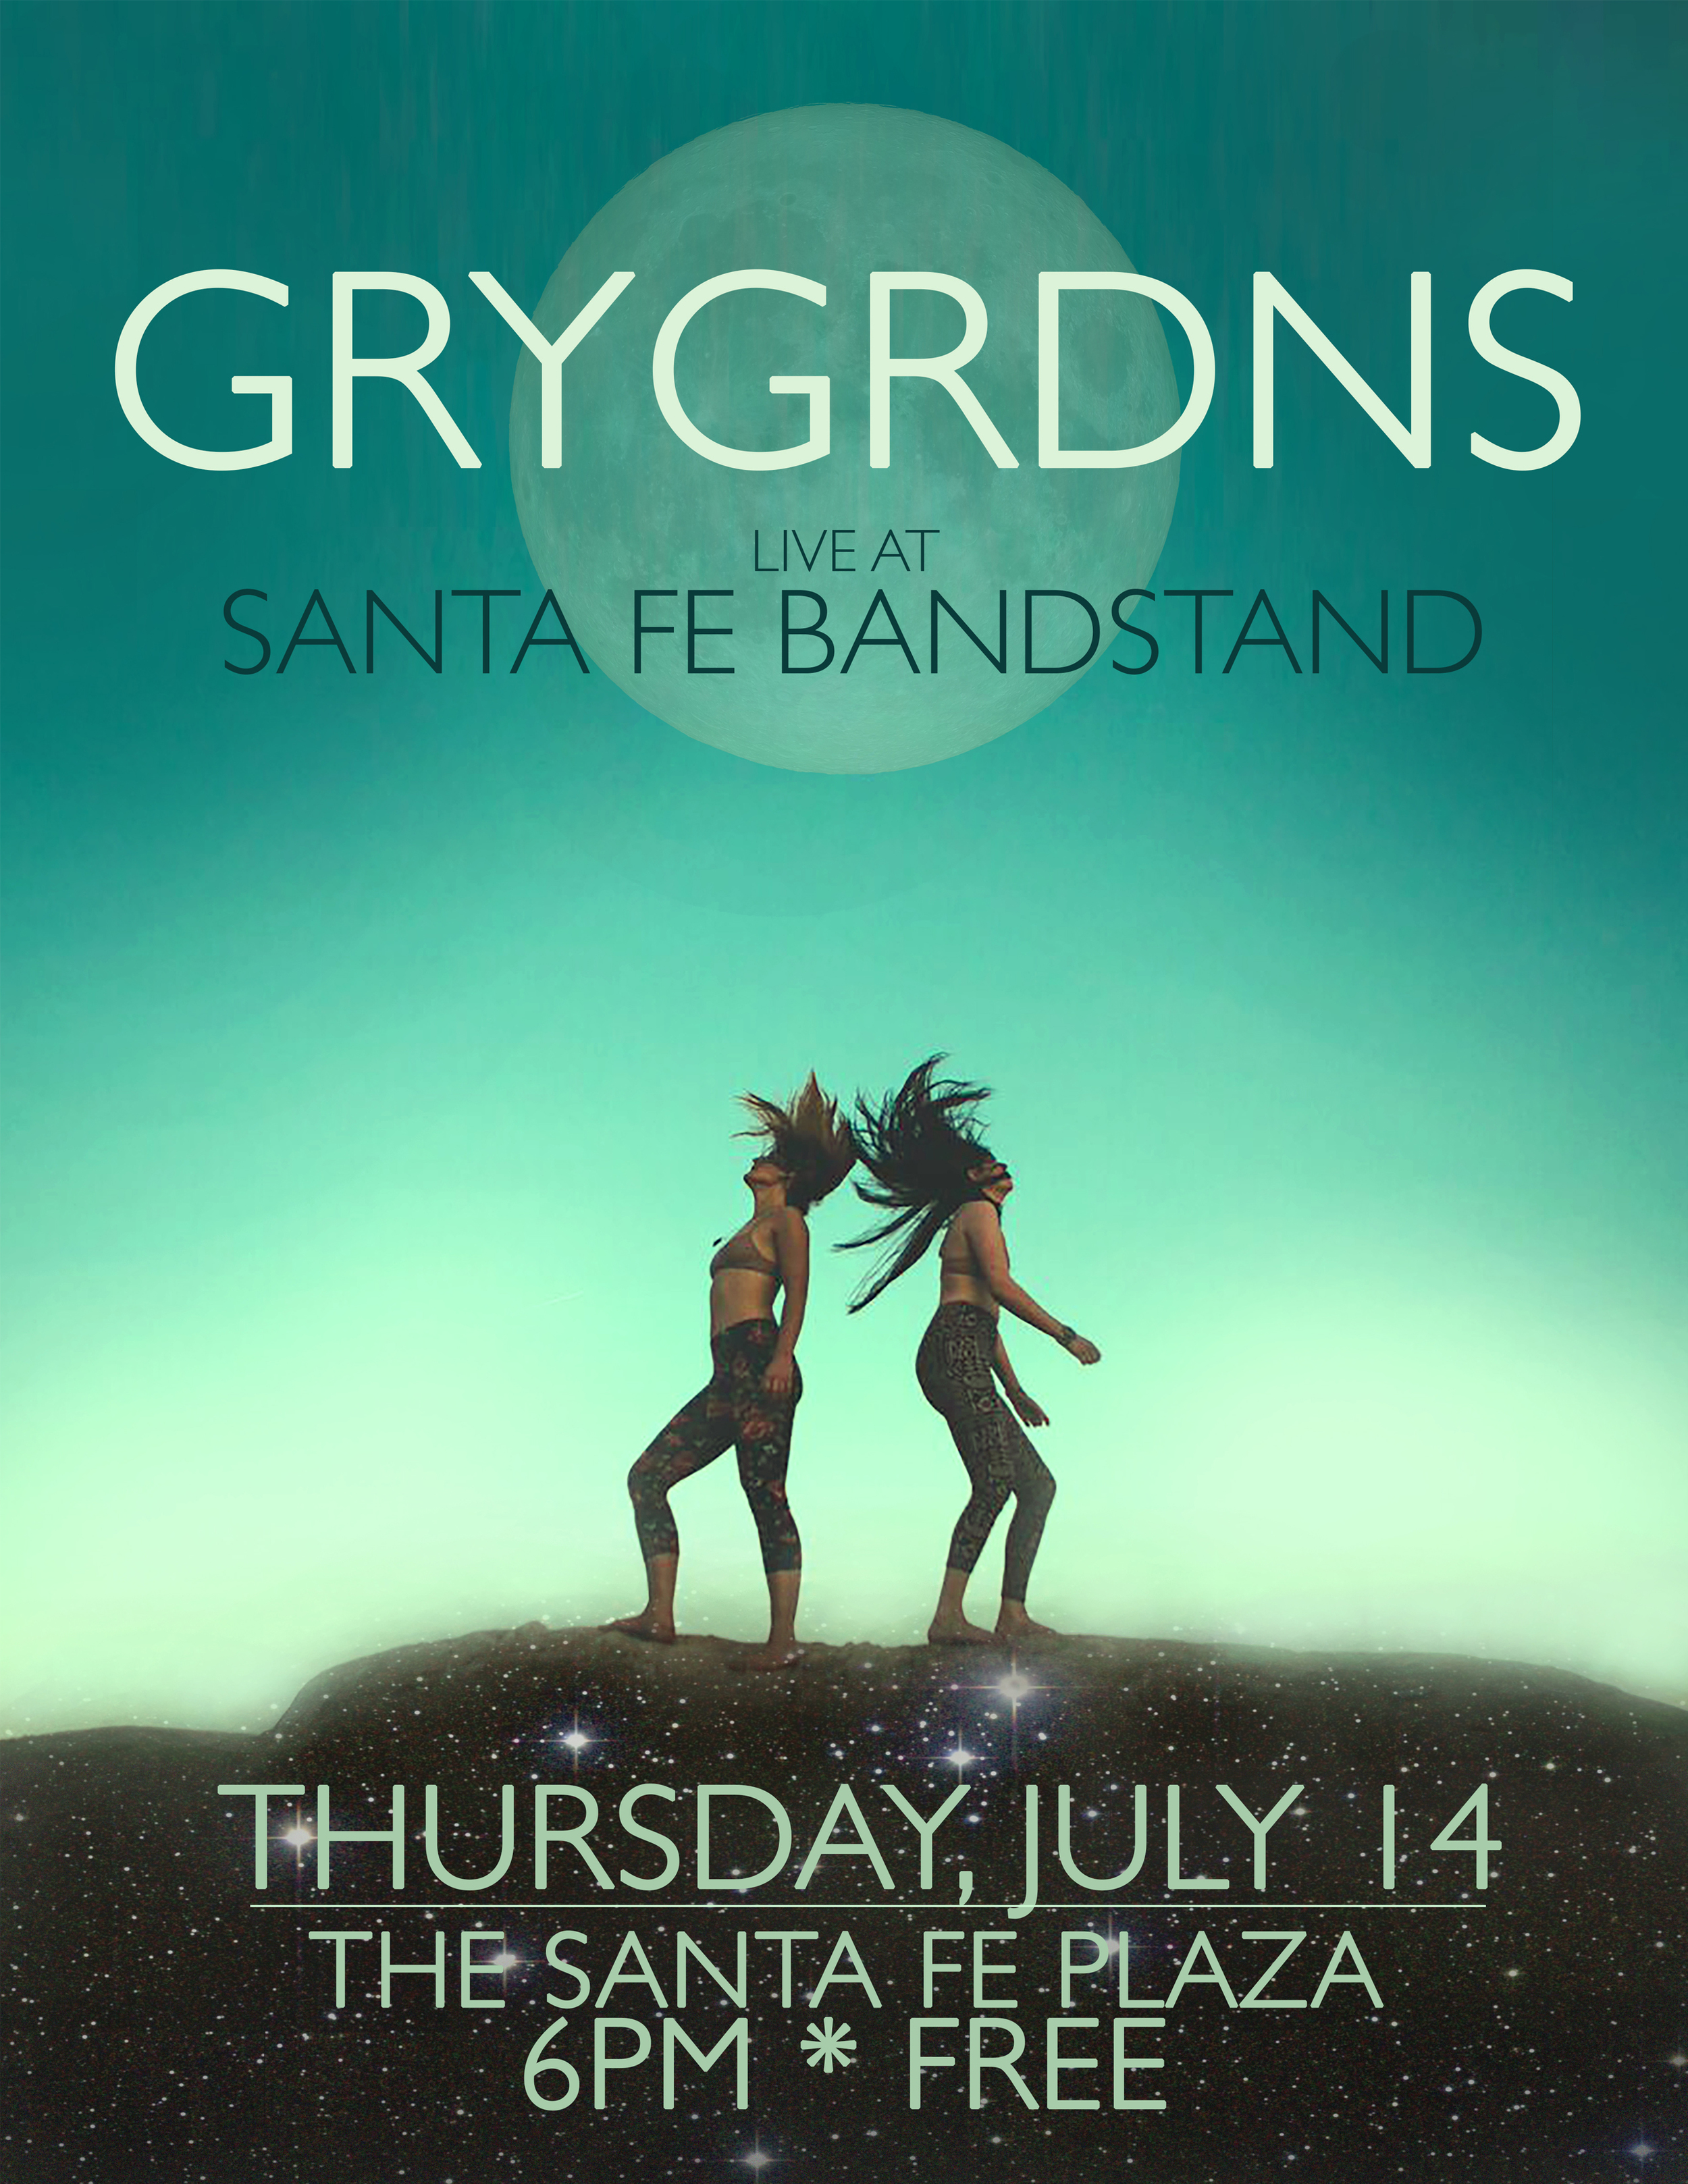 GRYGRDNS will perform at this year's Santa Fe Bandstand on Thursday, July 14th.  The annual summer long music festival begins on July 5th and runs through August 26 and brings a wide range of local, national and international acts to perform in the heart of downtown Santa Fe. GRYGRDNS plays at 6pm and all Bandstand shows are free and open to the public. For more information vistit:   http://santafebandstand.org/event/grydrdns/